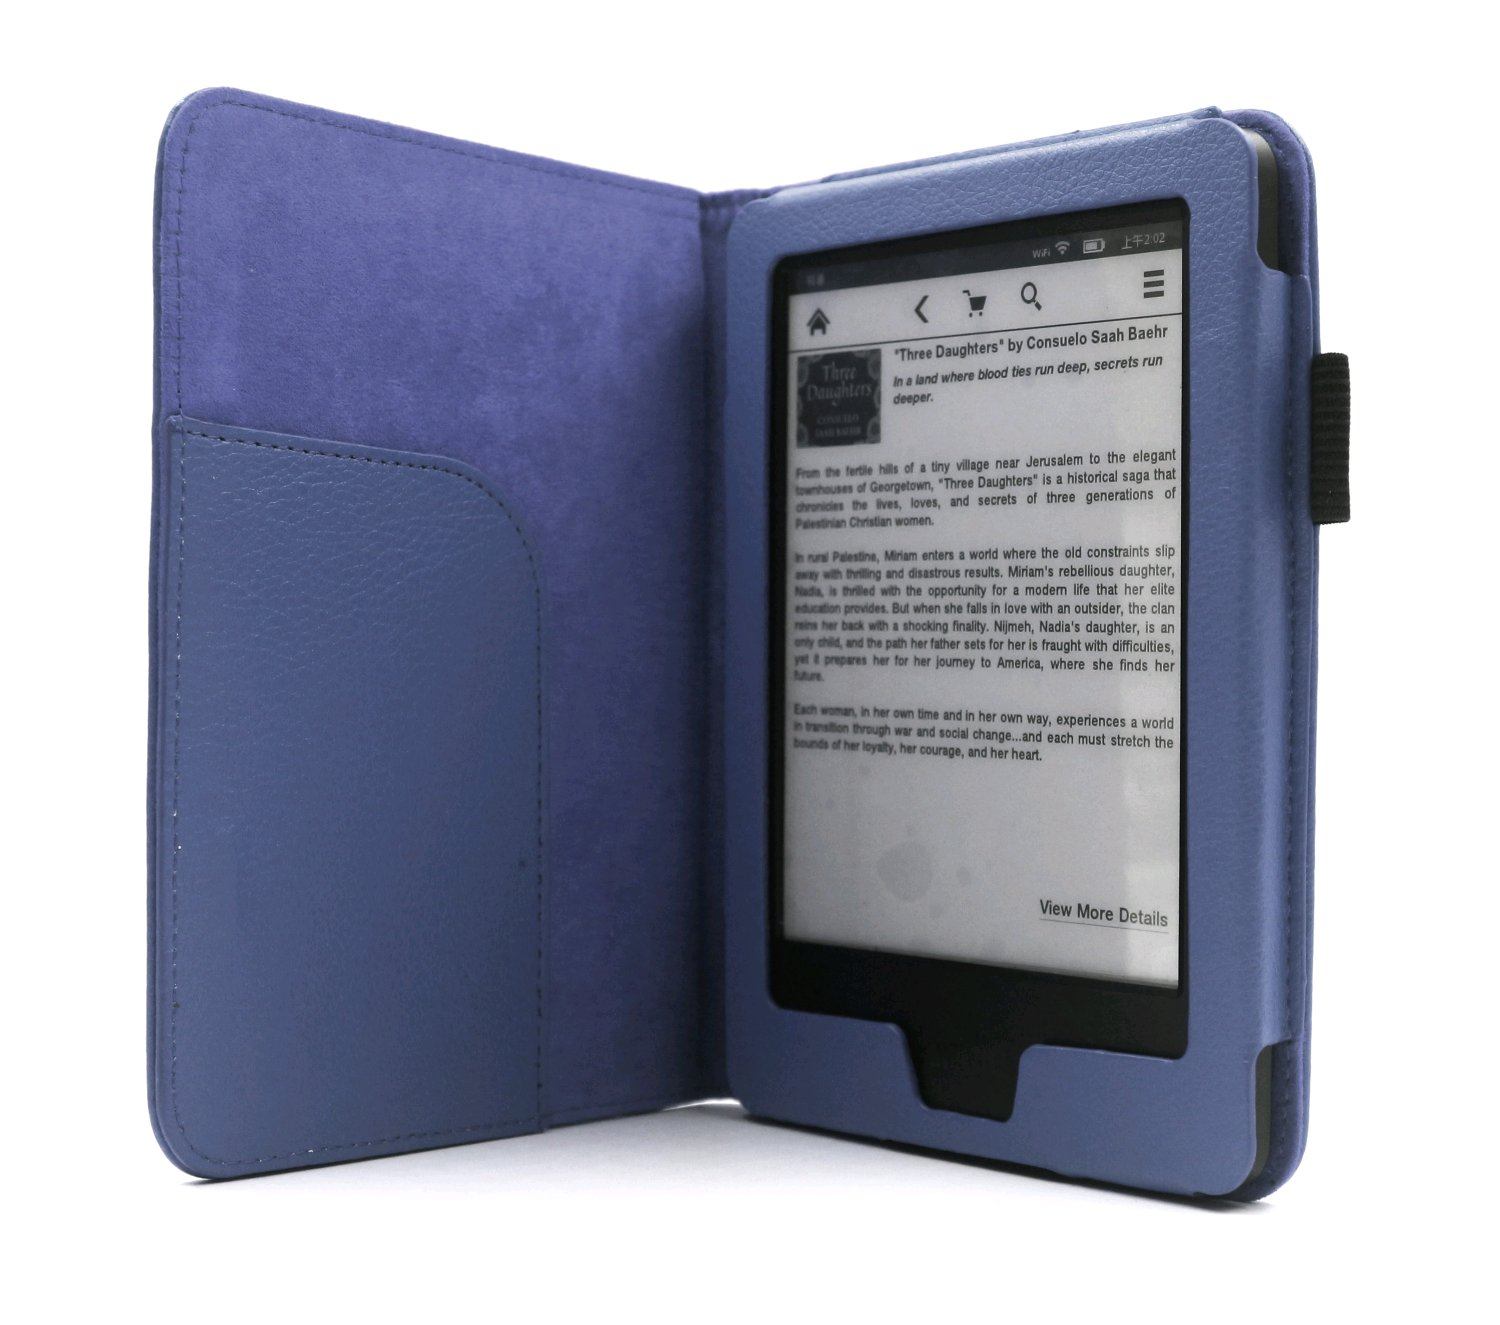 C-TECH pouzdro Kindle 6 Touch wake/sleep, modré